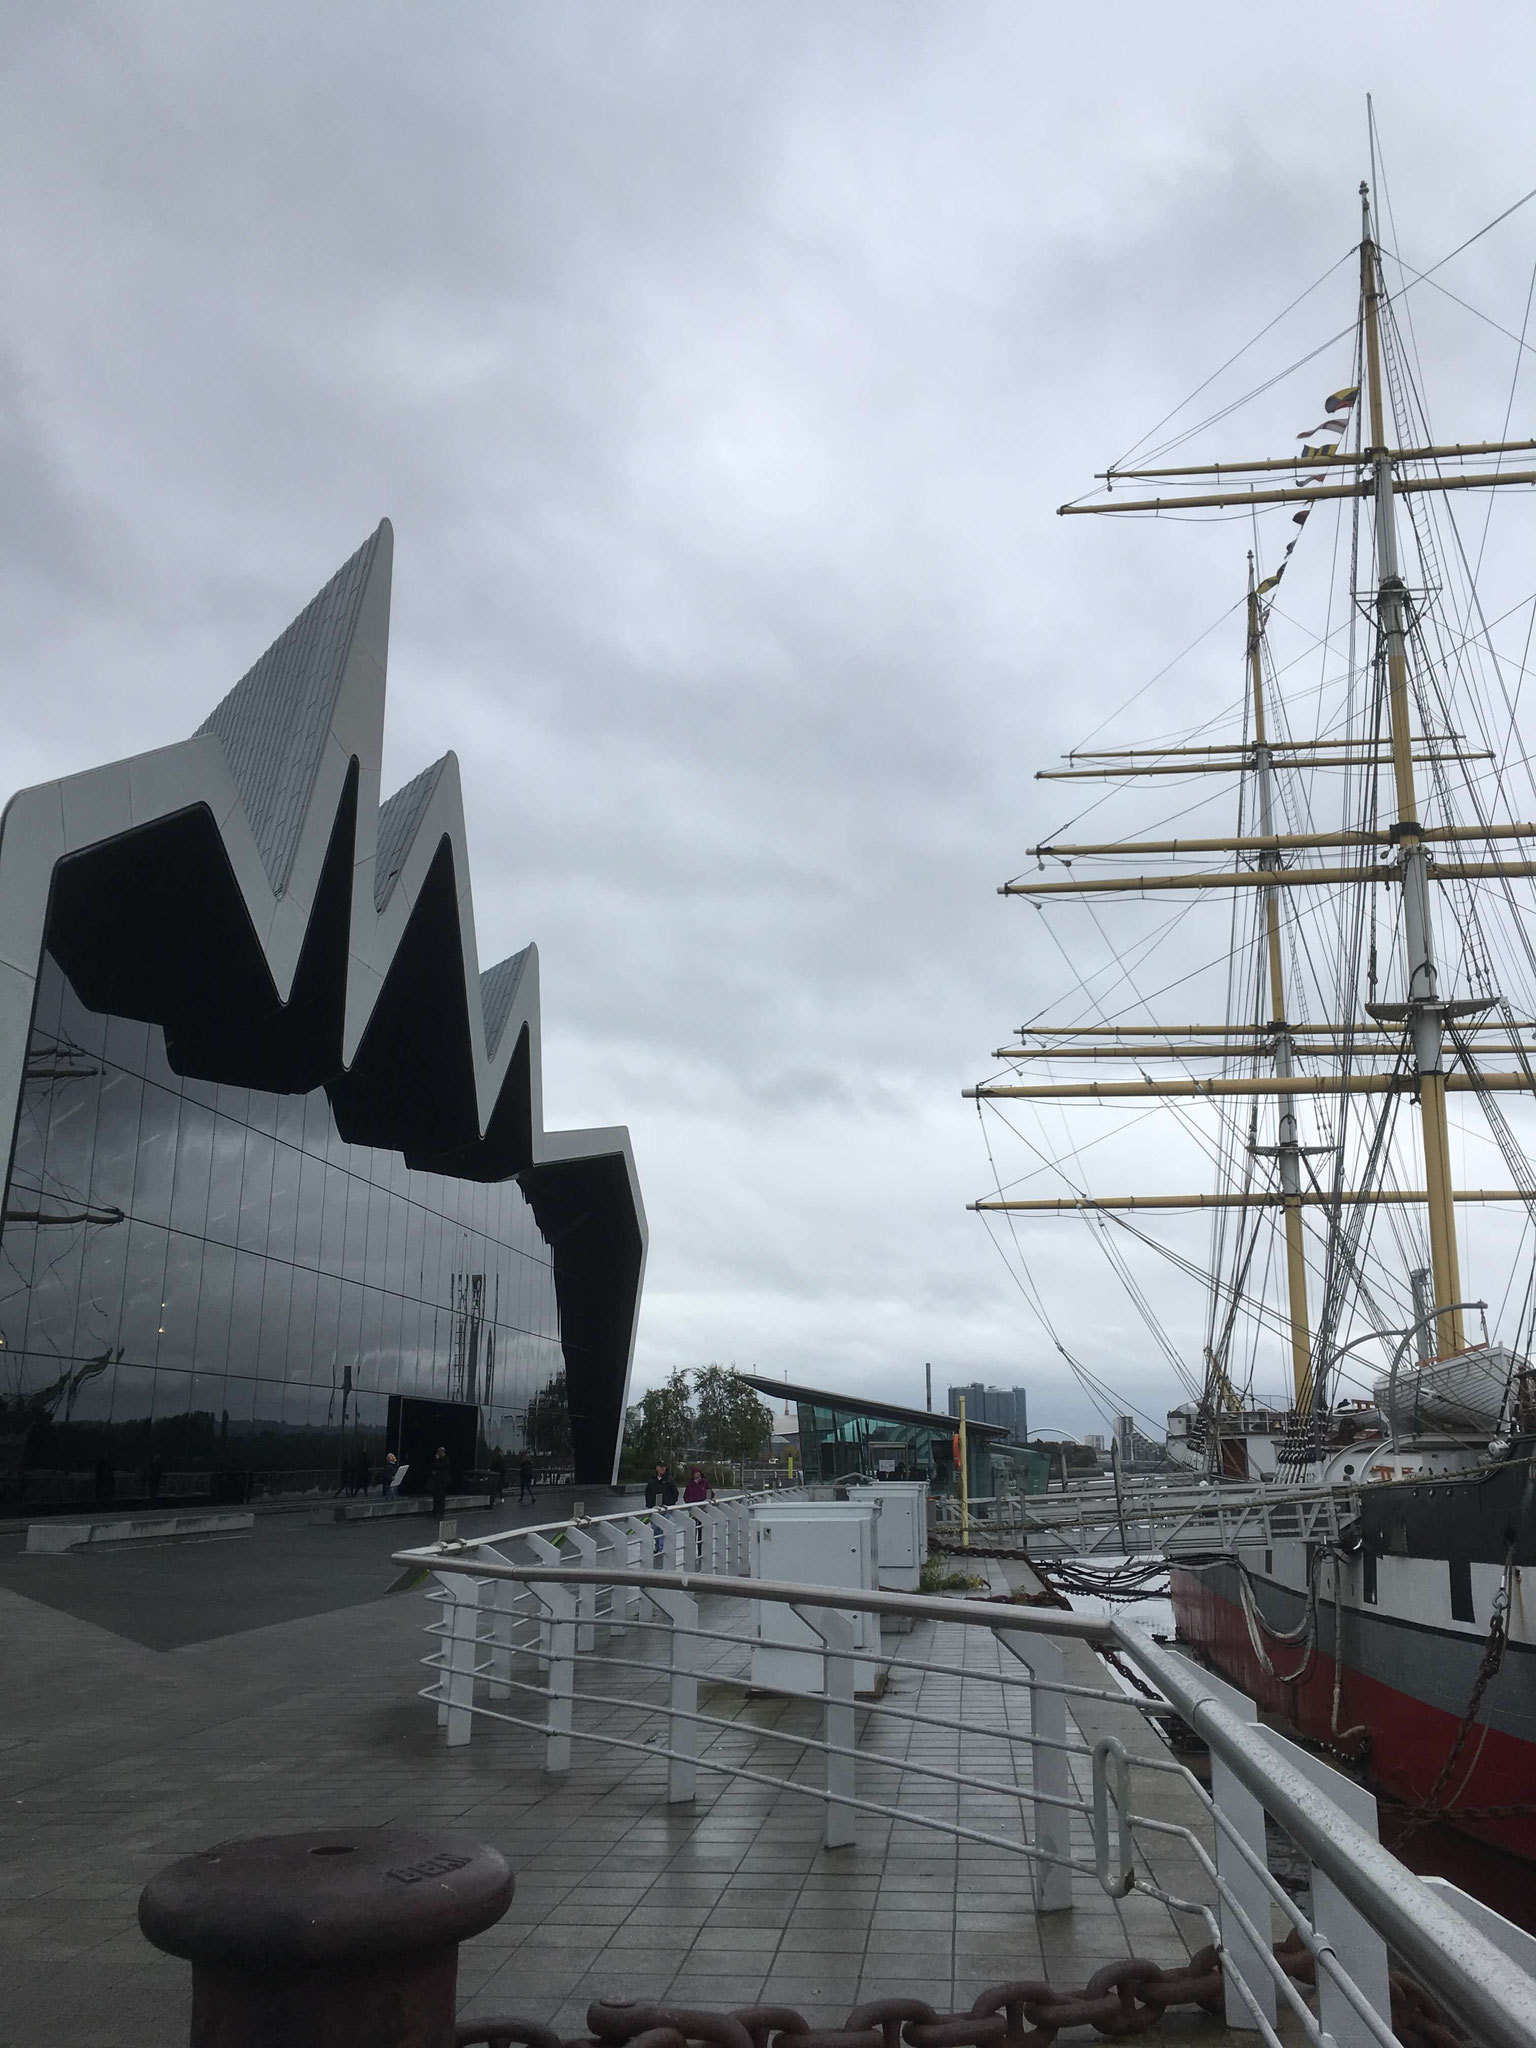 Riverside Museum and the tall ship Glenlee, Glasgow